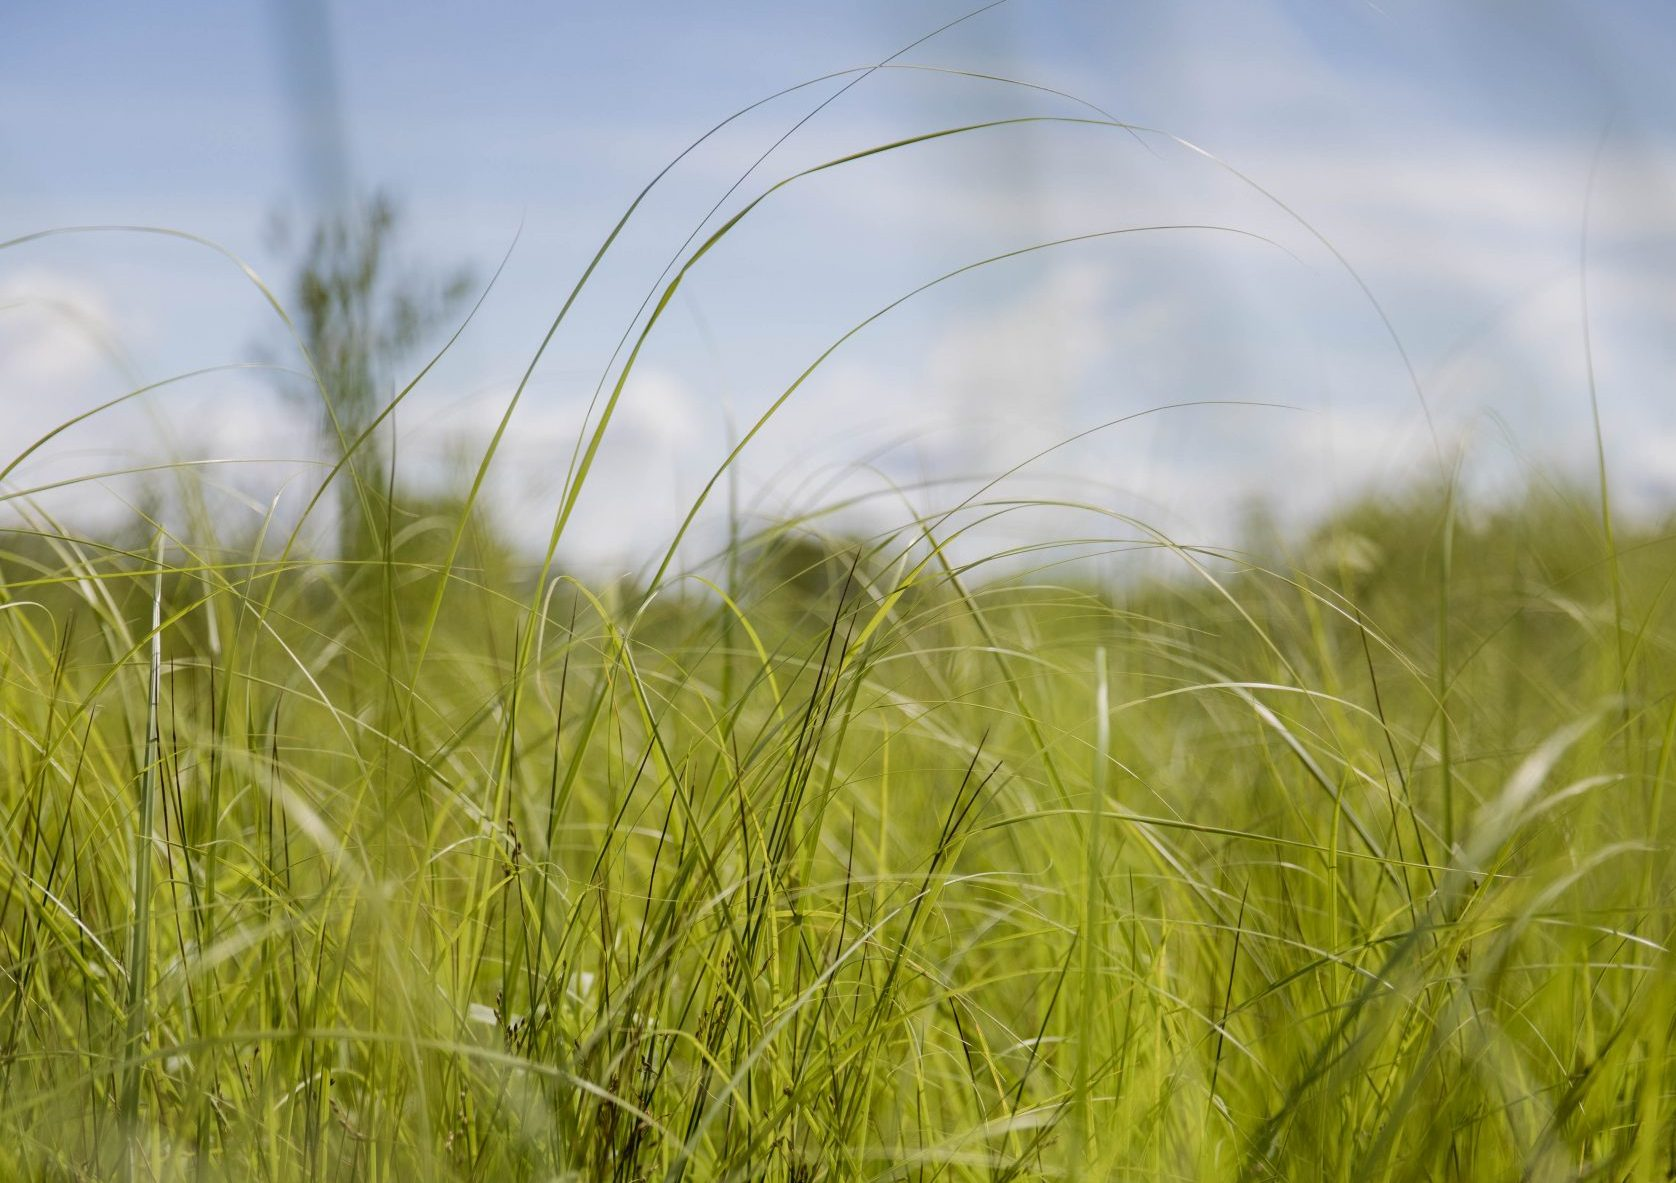 Tall green grass fills most of the photo with blue sky behind it.